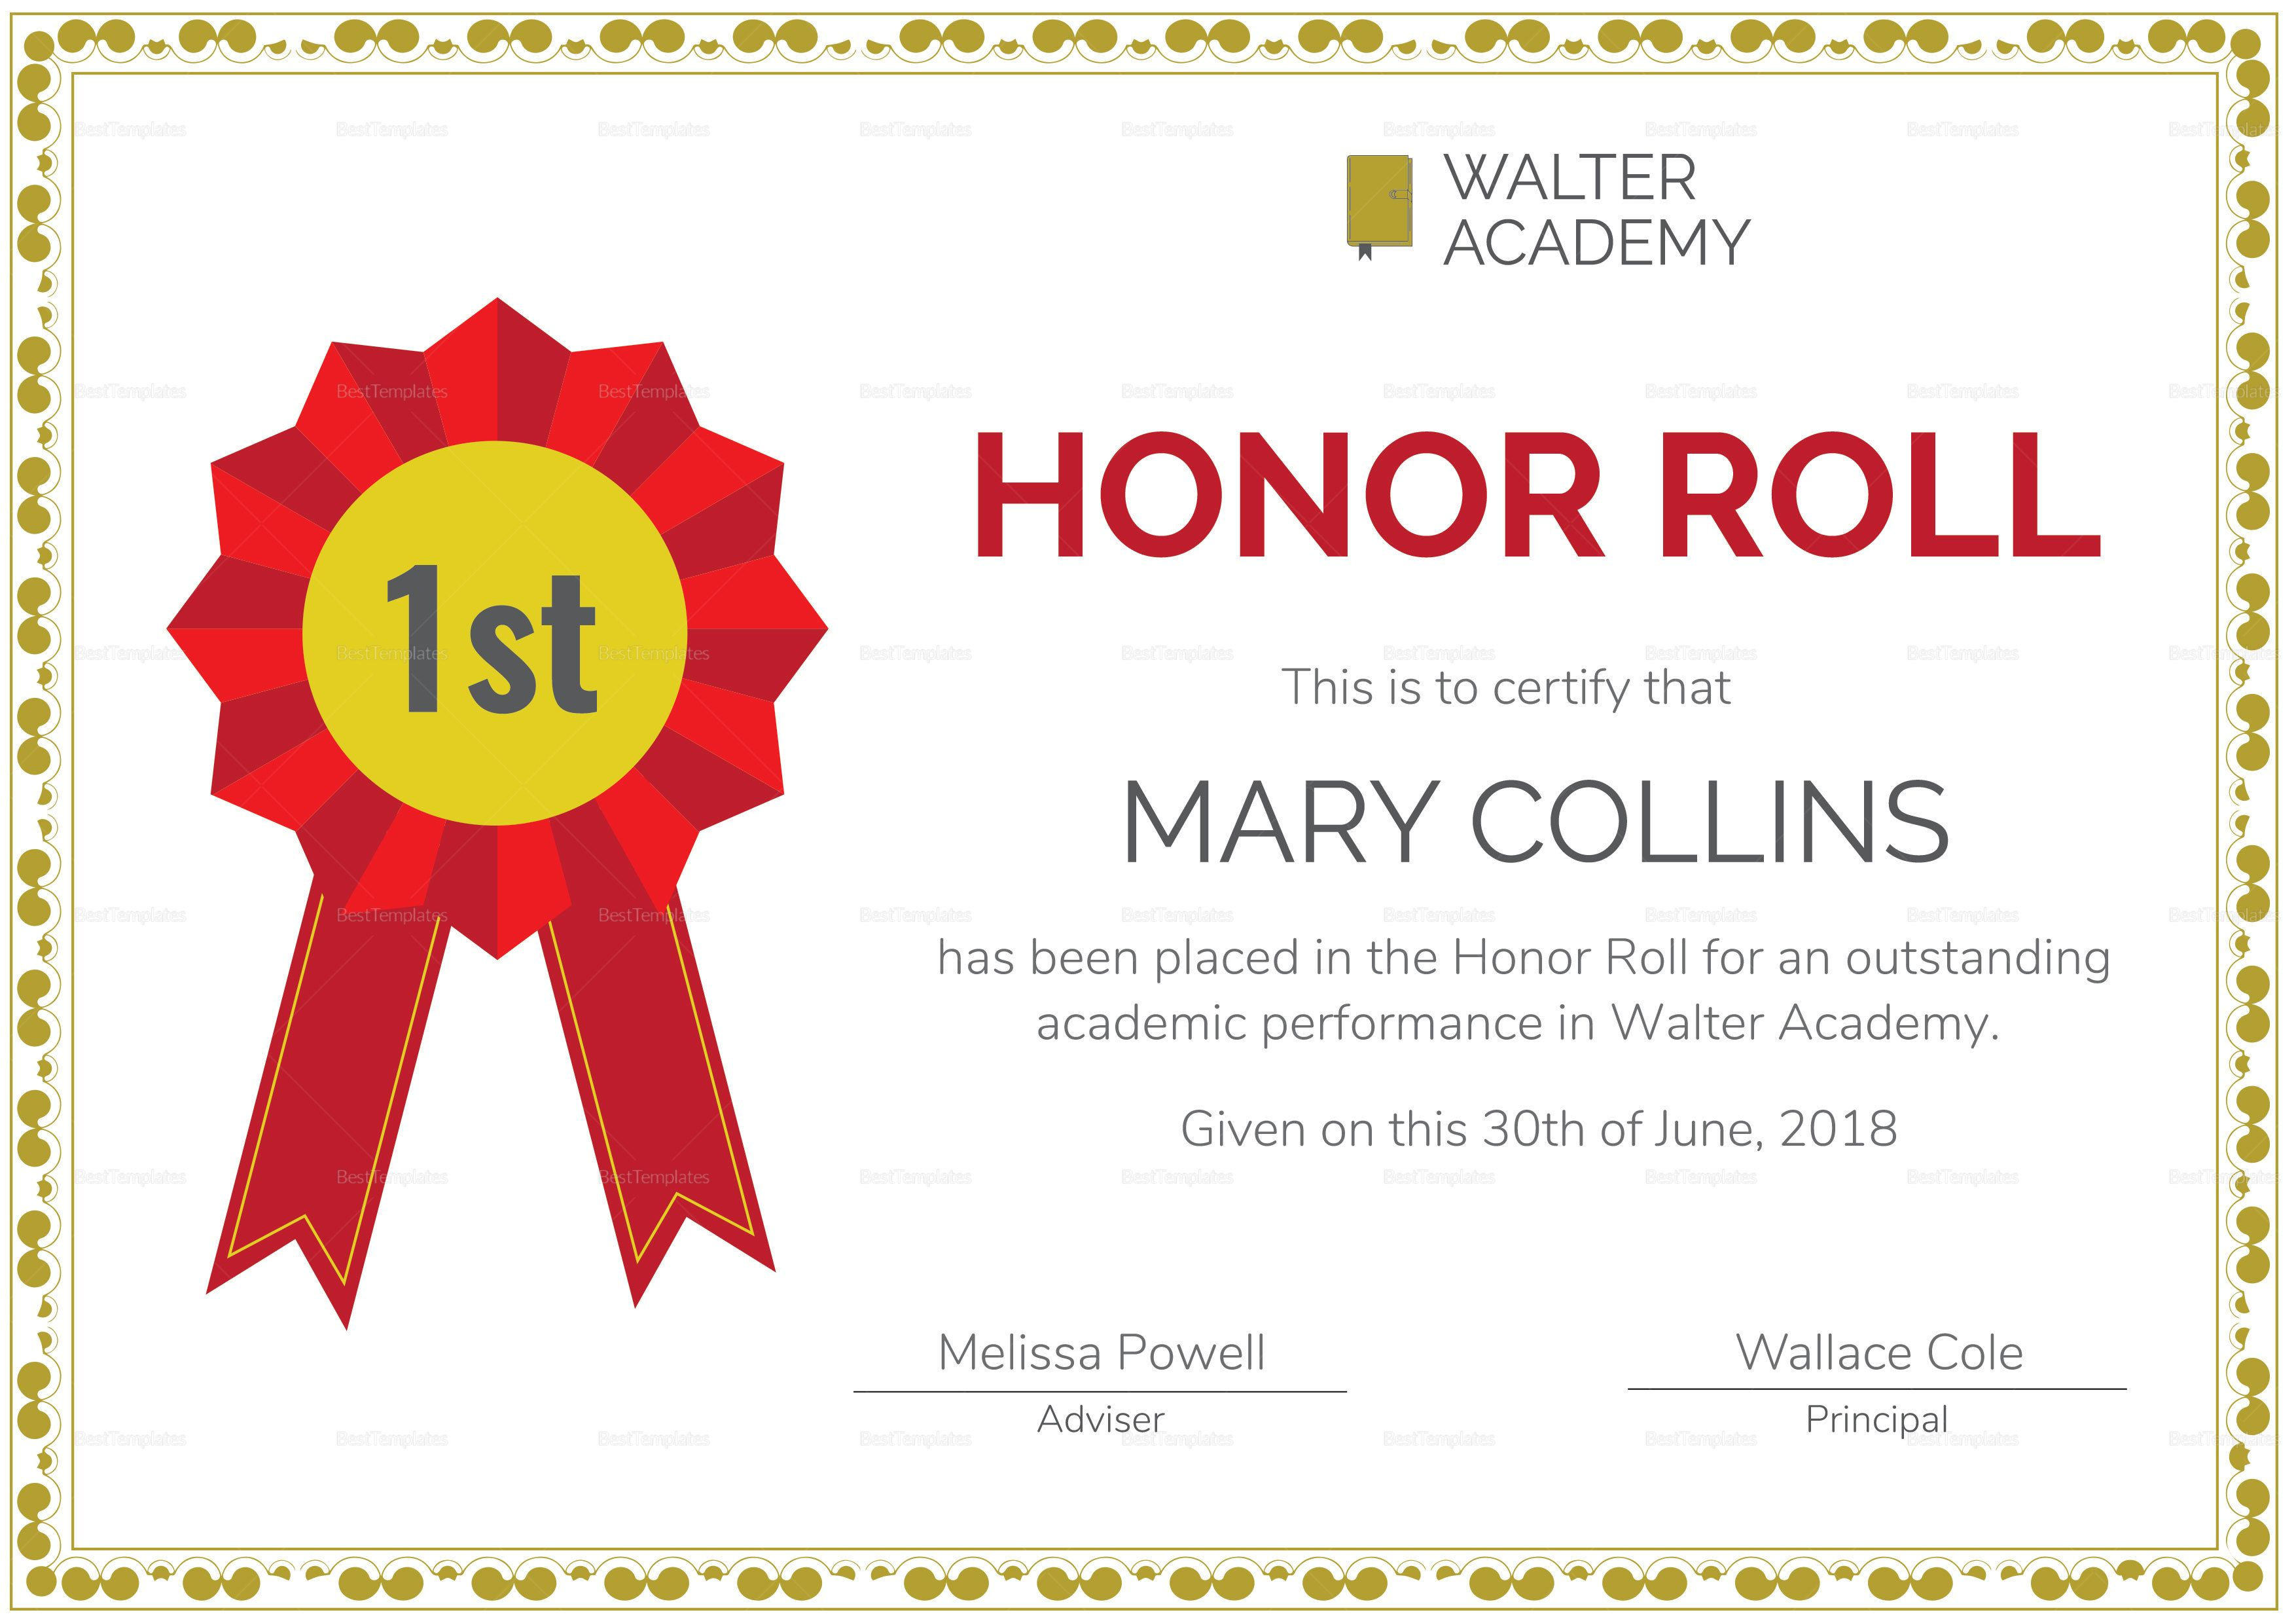 Honor Roll Certificate Template   Awards Certificates Inside Honor Roll Certificate Template